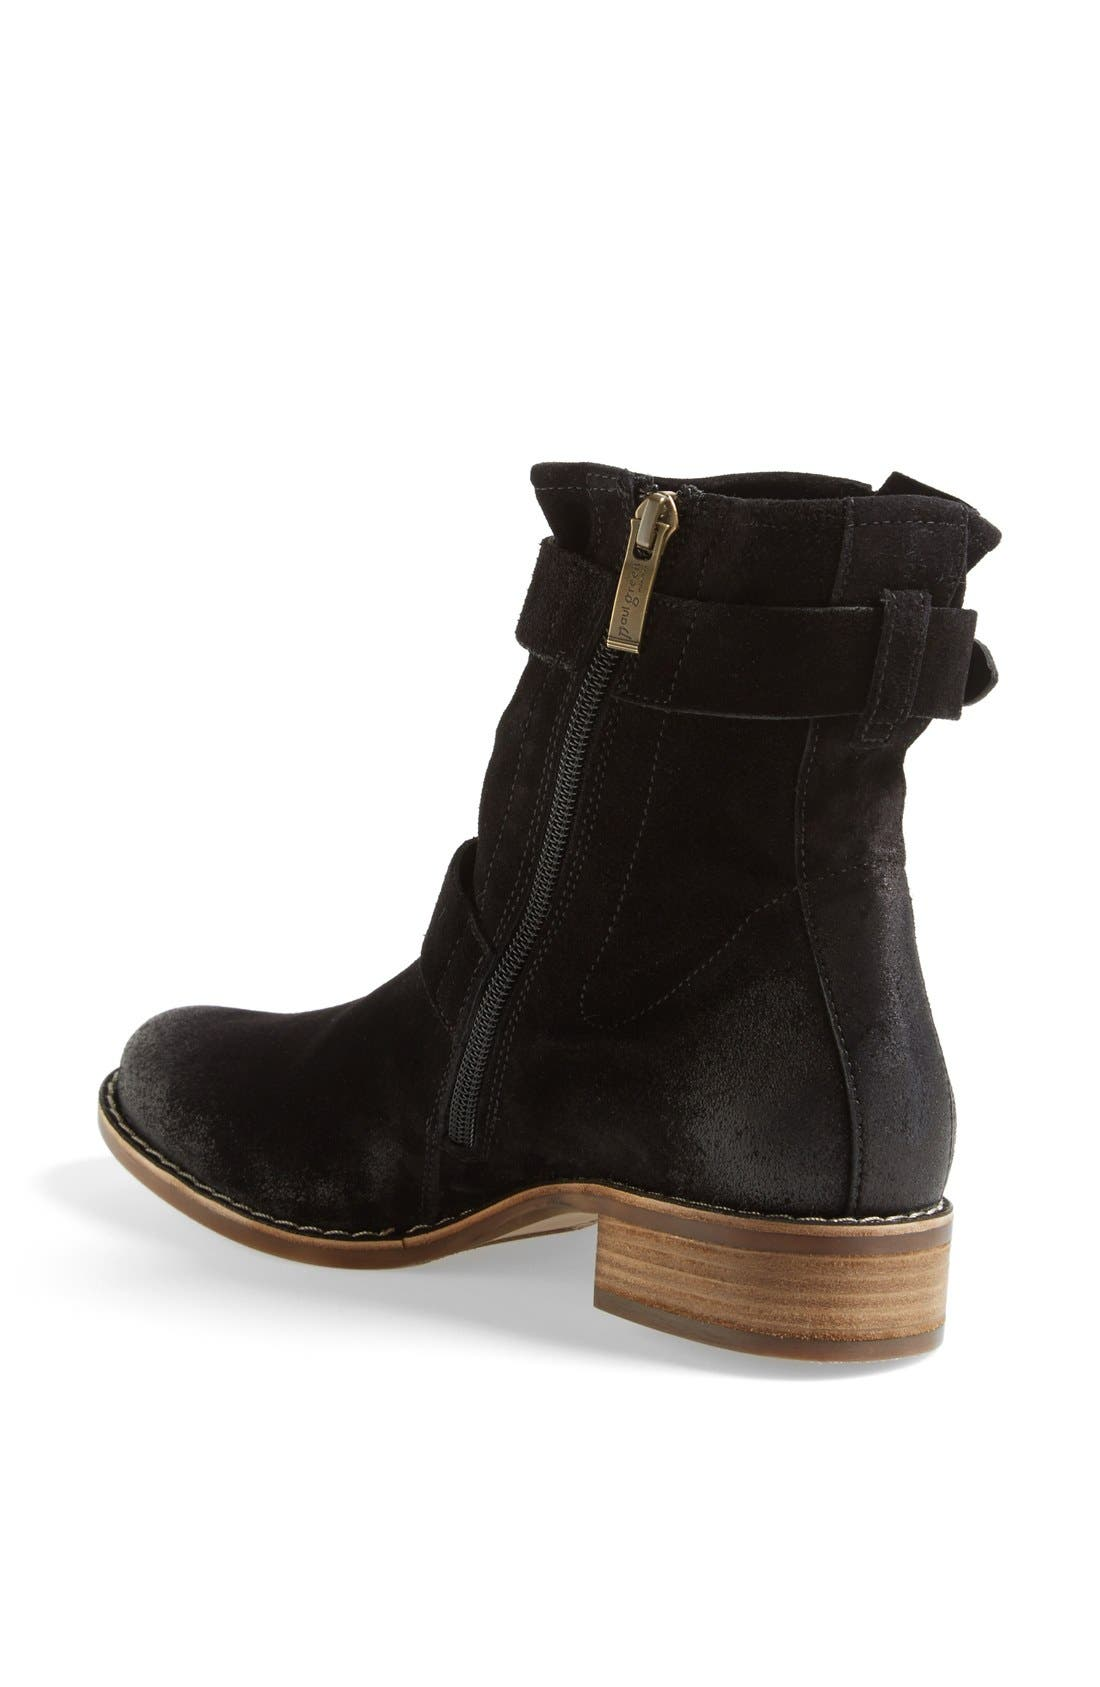 'Ally' Belted Suede Moto Boot,                             Alternate thumbnail 2, color,                             002